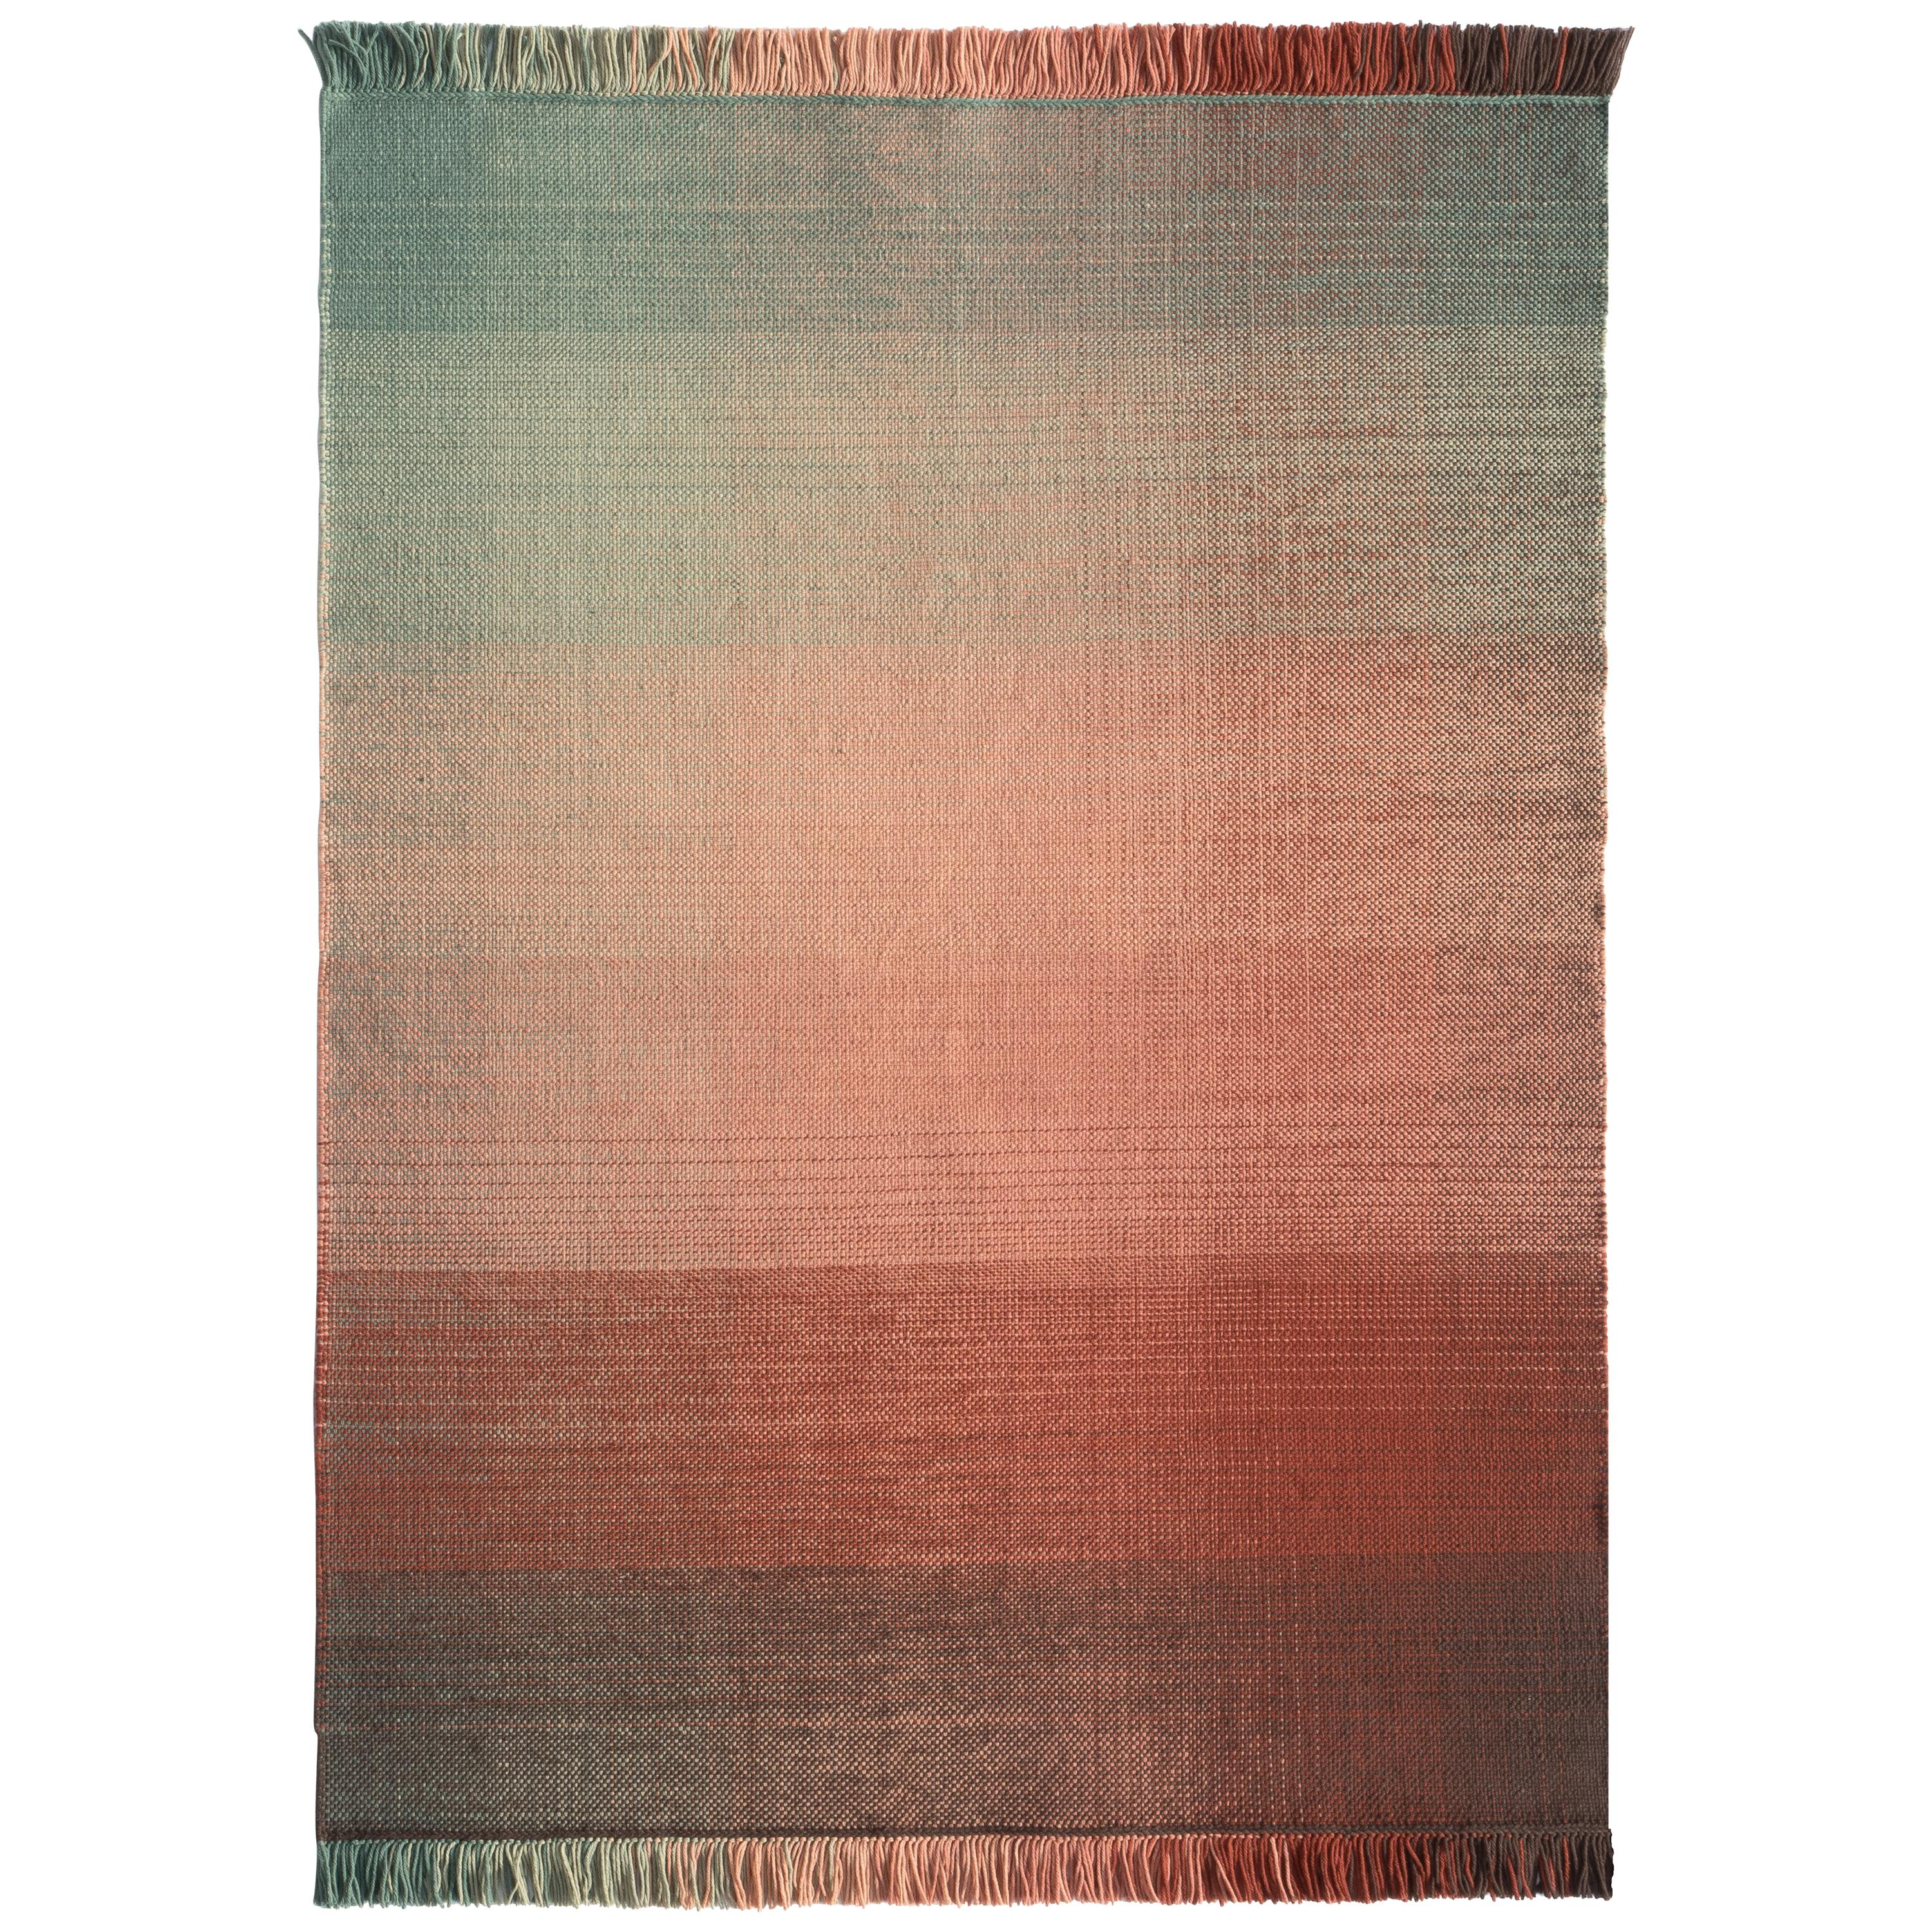 Nanimarquina Shade Outdoor Standard Rug 1 in Red & Green by Begüm Cana Özgür